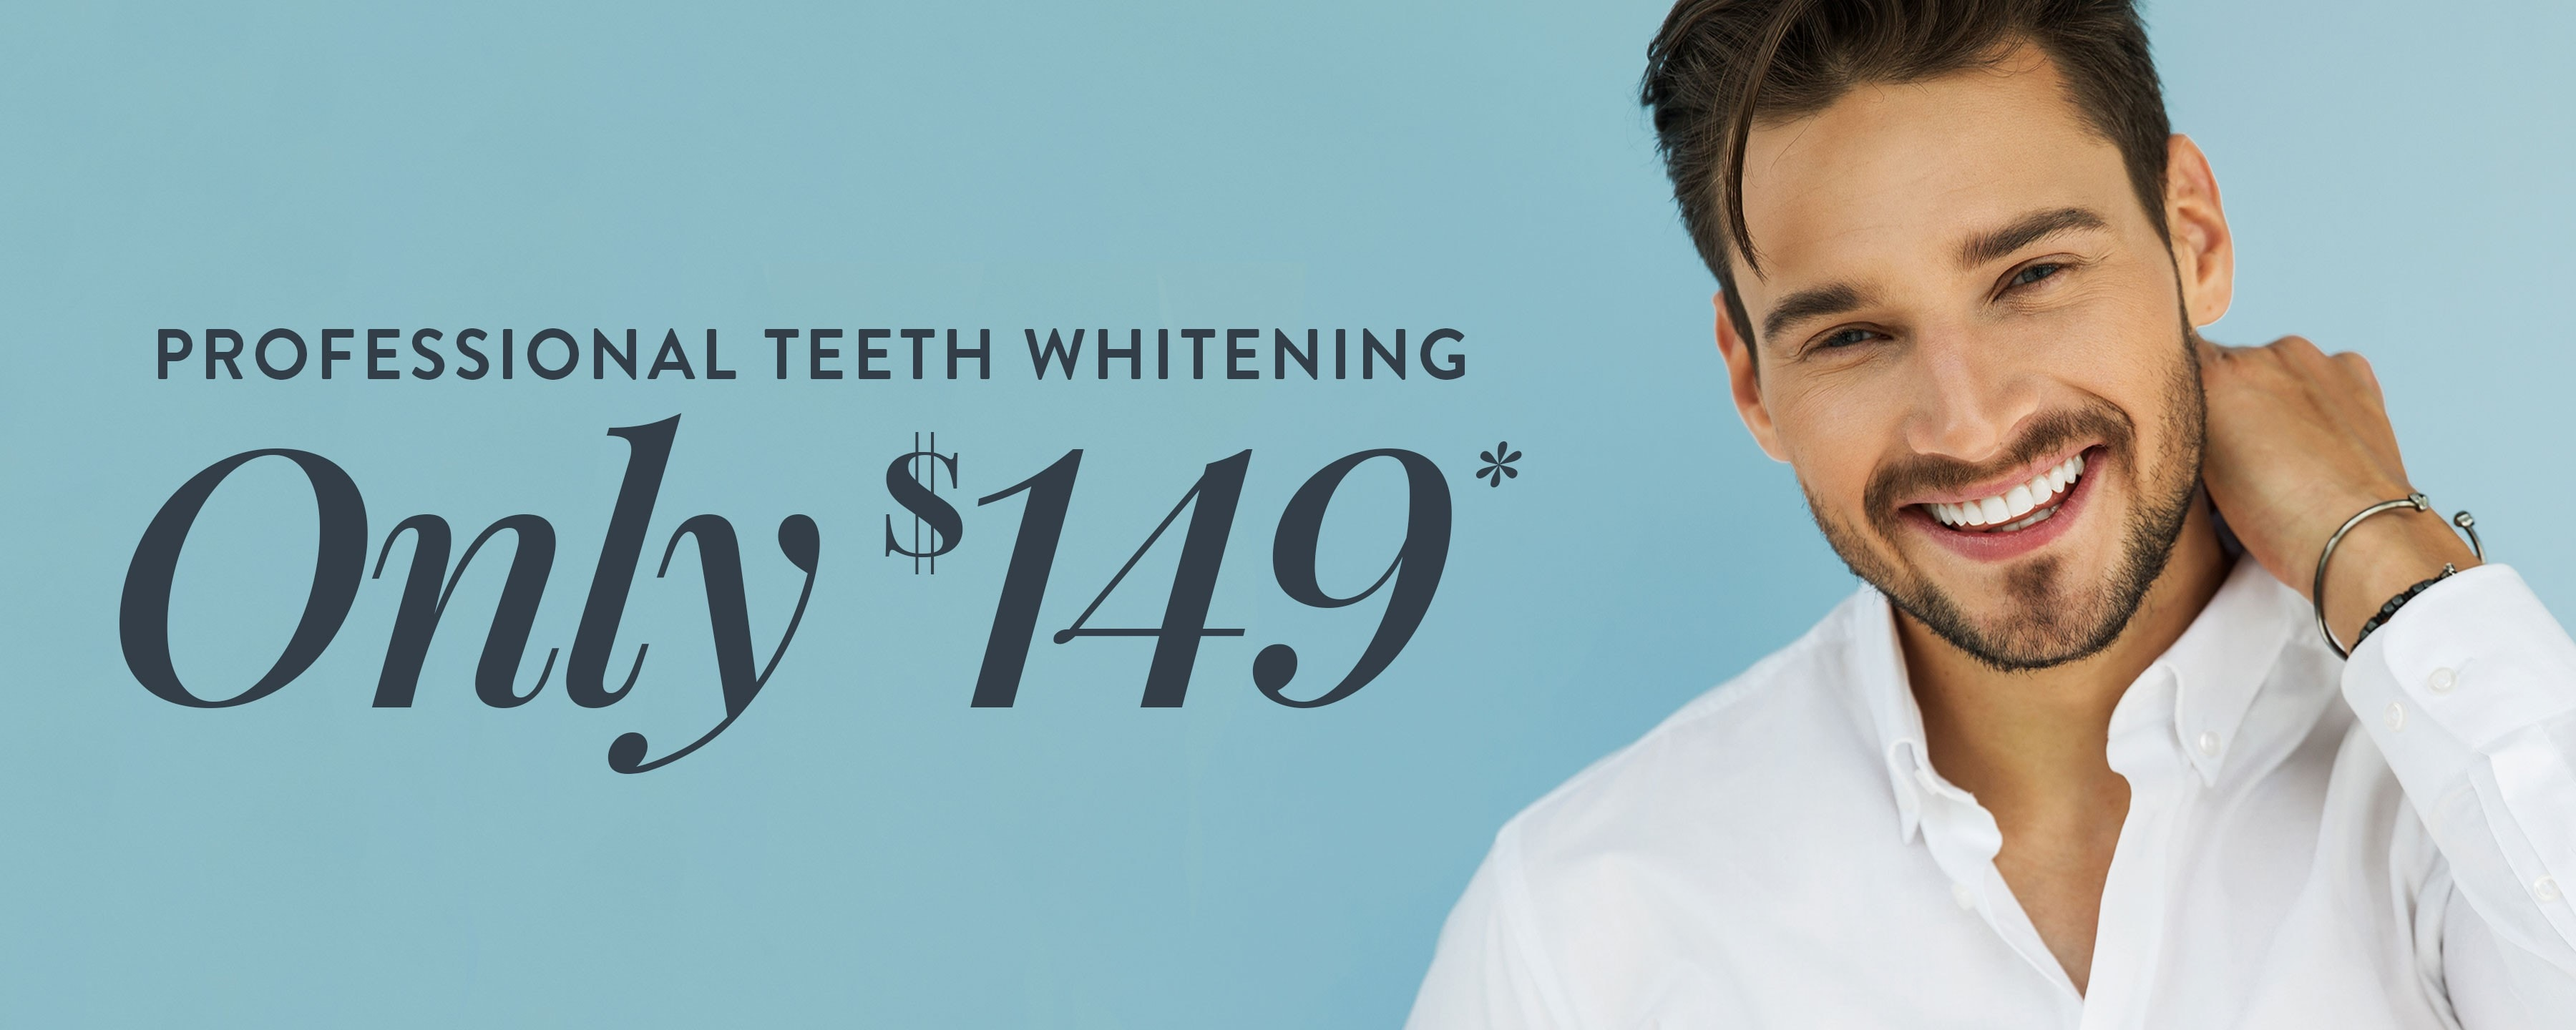 Professional Teeth Whitening - Only $149*